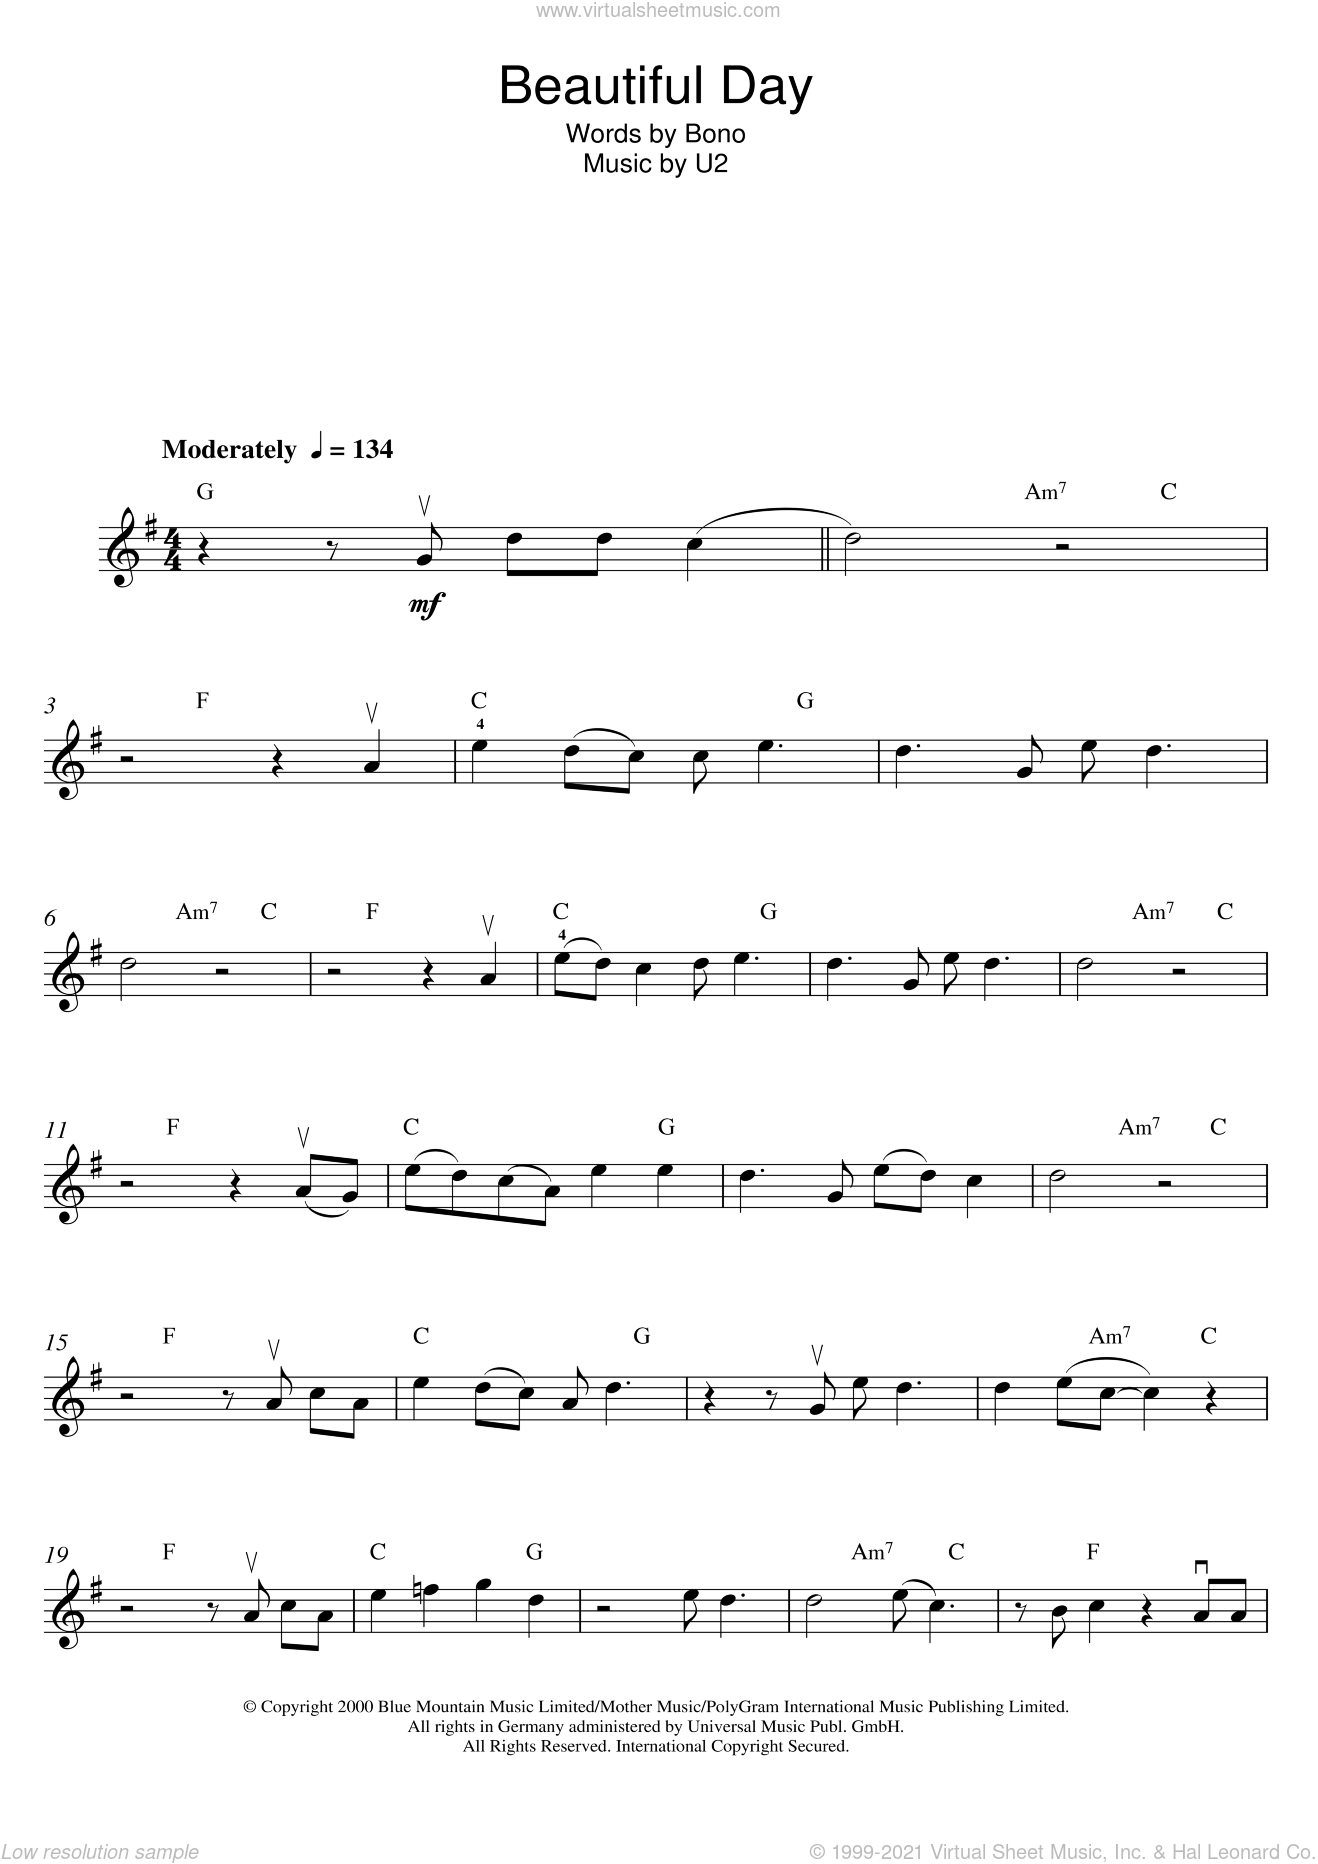 Beautiful Day sheet music for violin solo by U2 and Bono, intermediate skill level